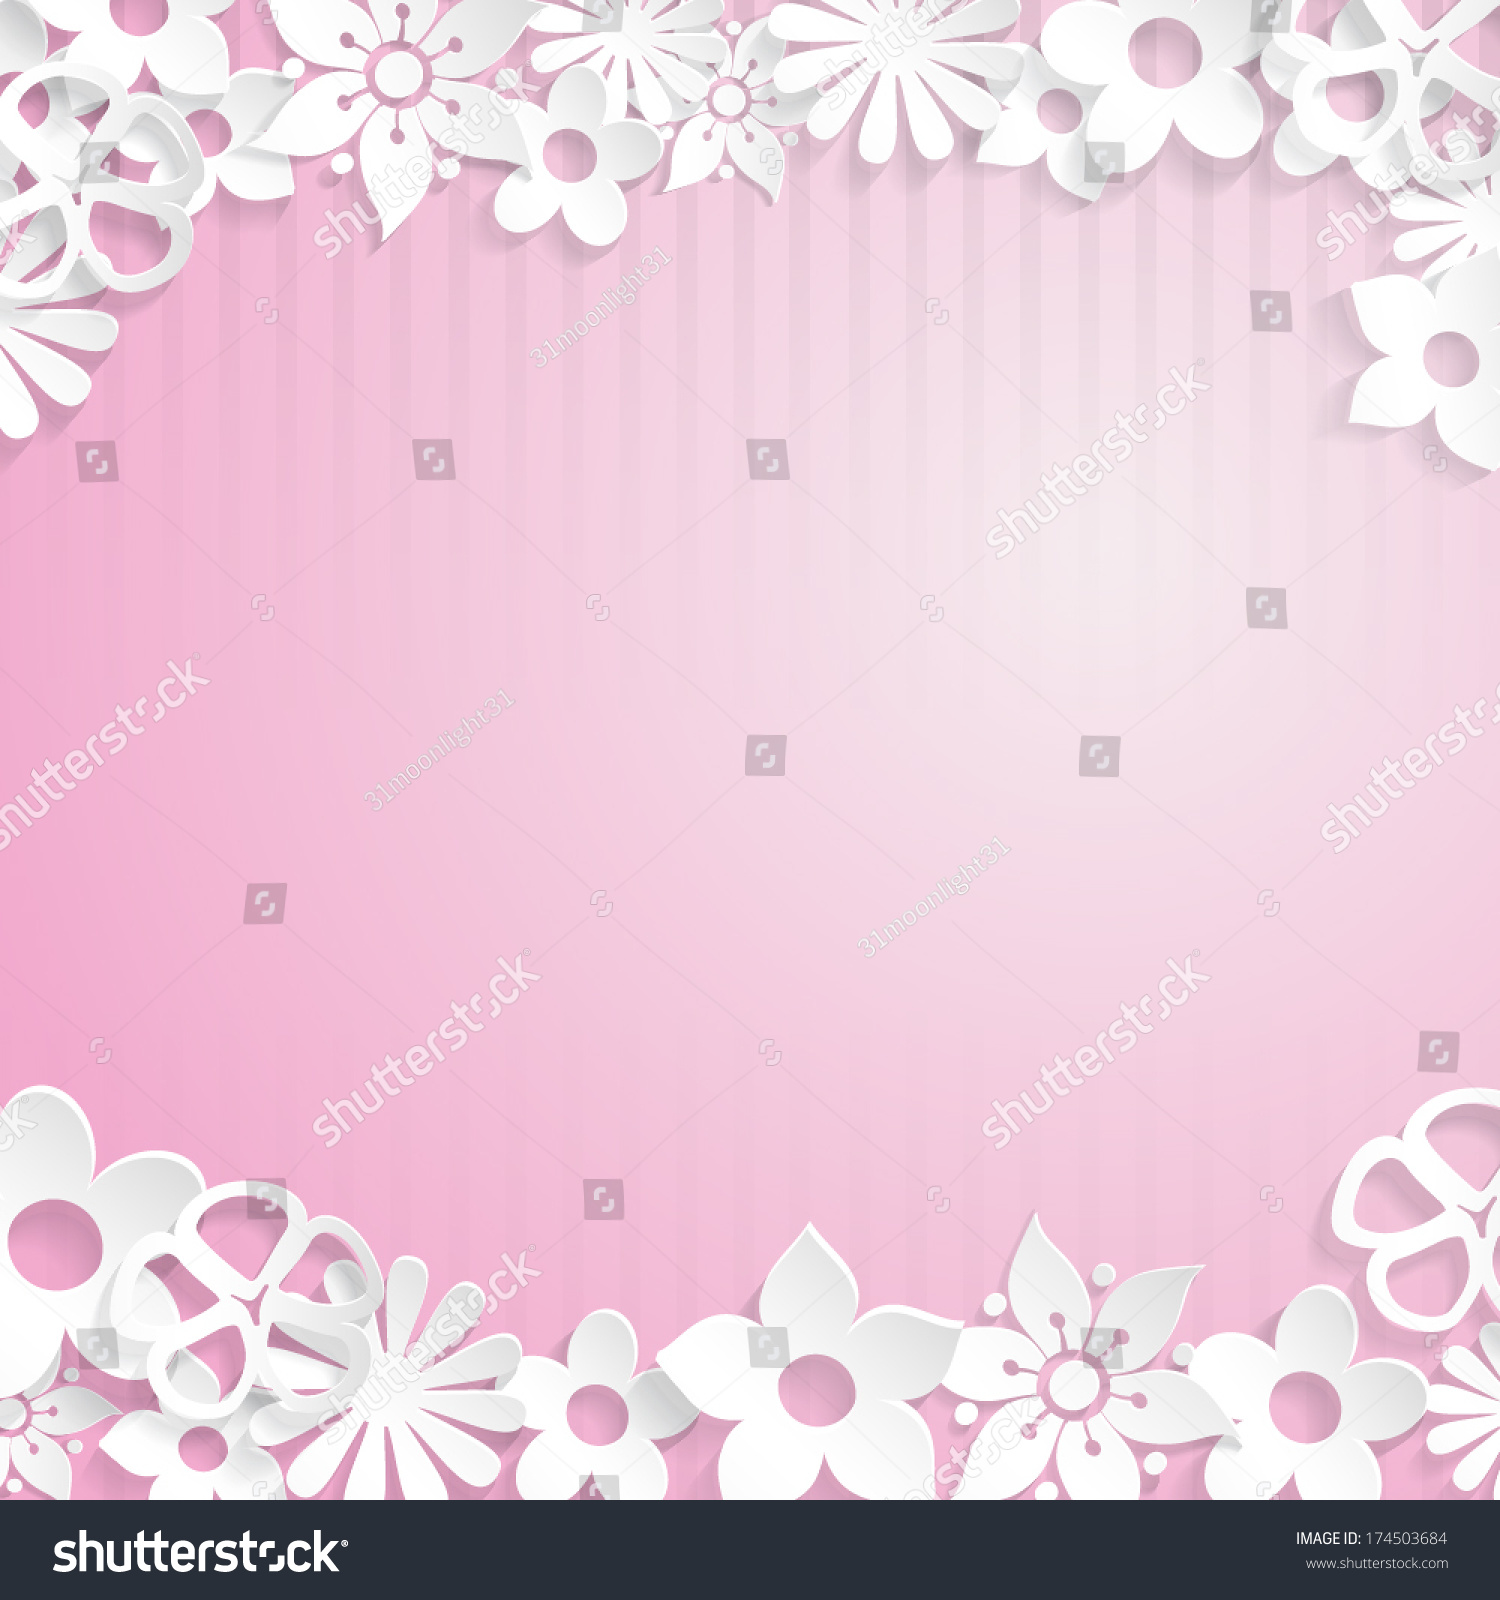 Pink Background Flowers Cut Out White Stock Vector